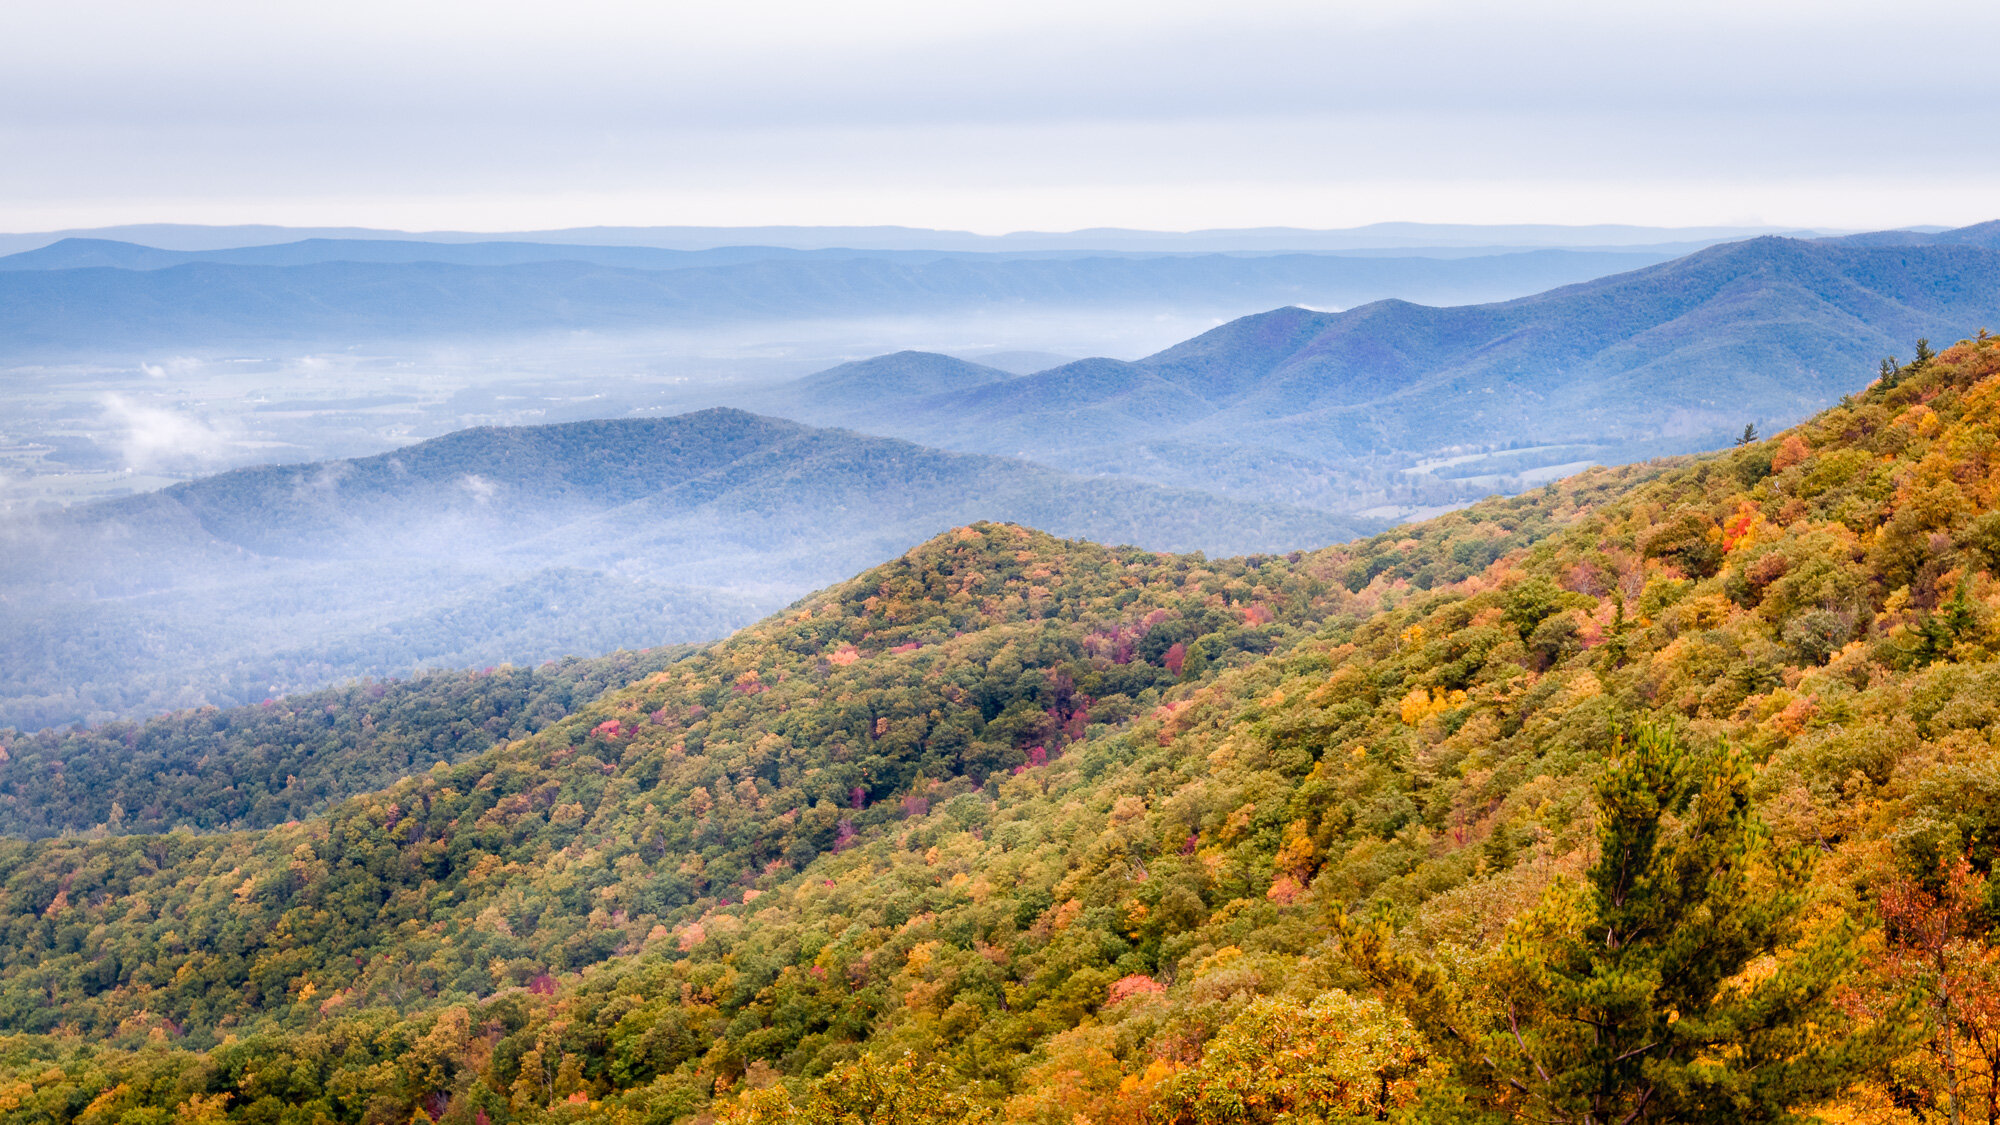 Autumn Blue : An early October view from the Blue Ridge Mountains of Shenandoah National Park